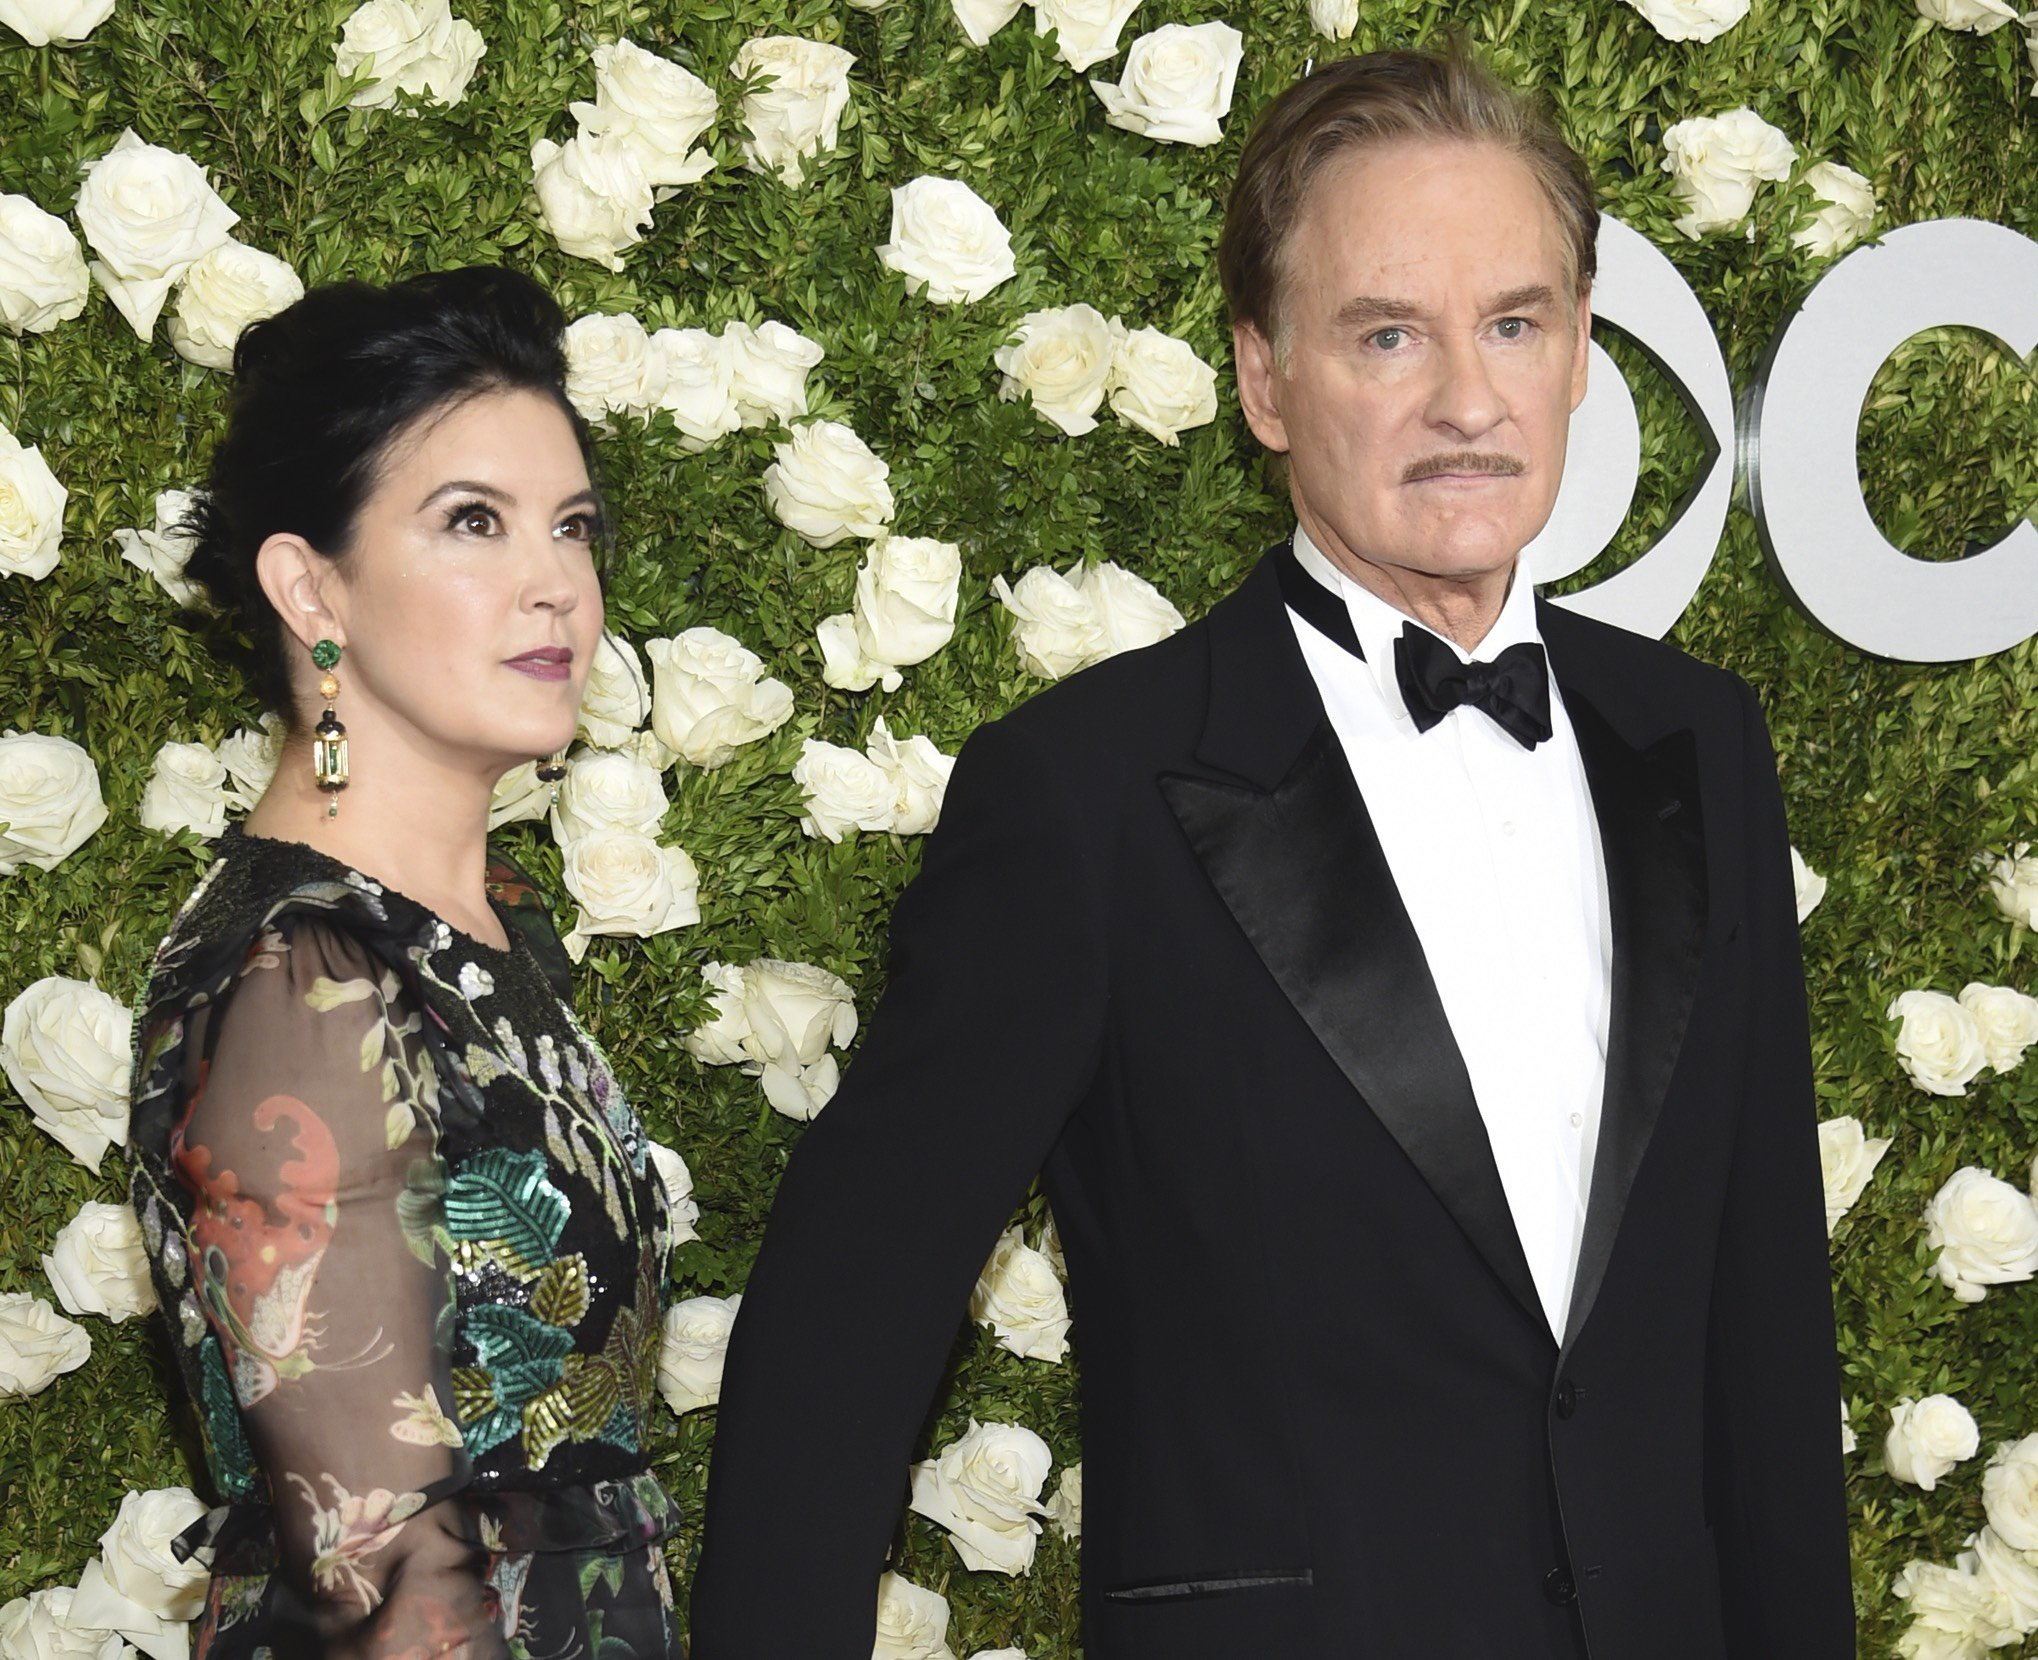 457QXGWFFRFTPMTT7724DS5M3E 20 Things You Never Knew About Kevin Kline